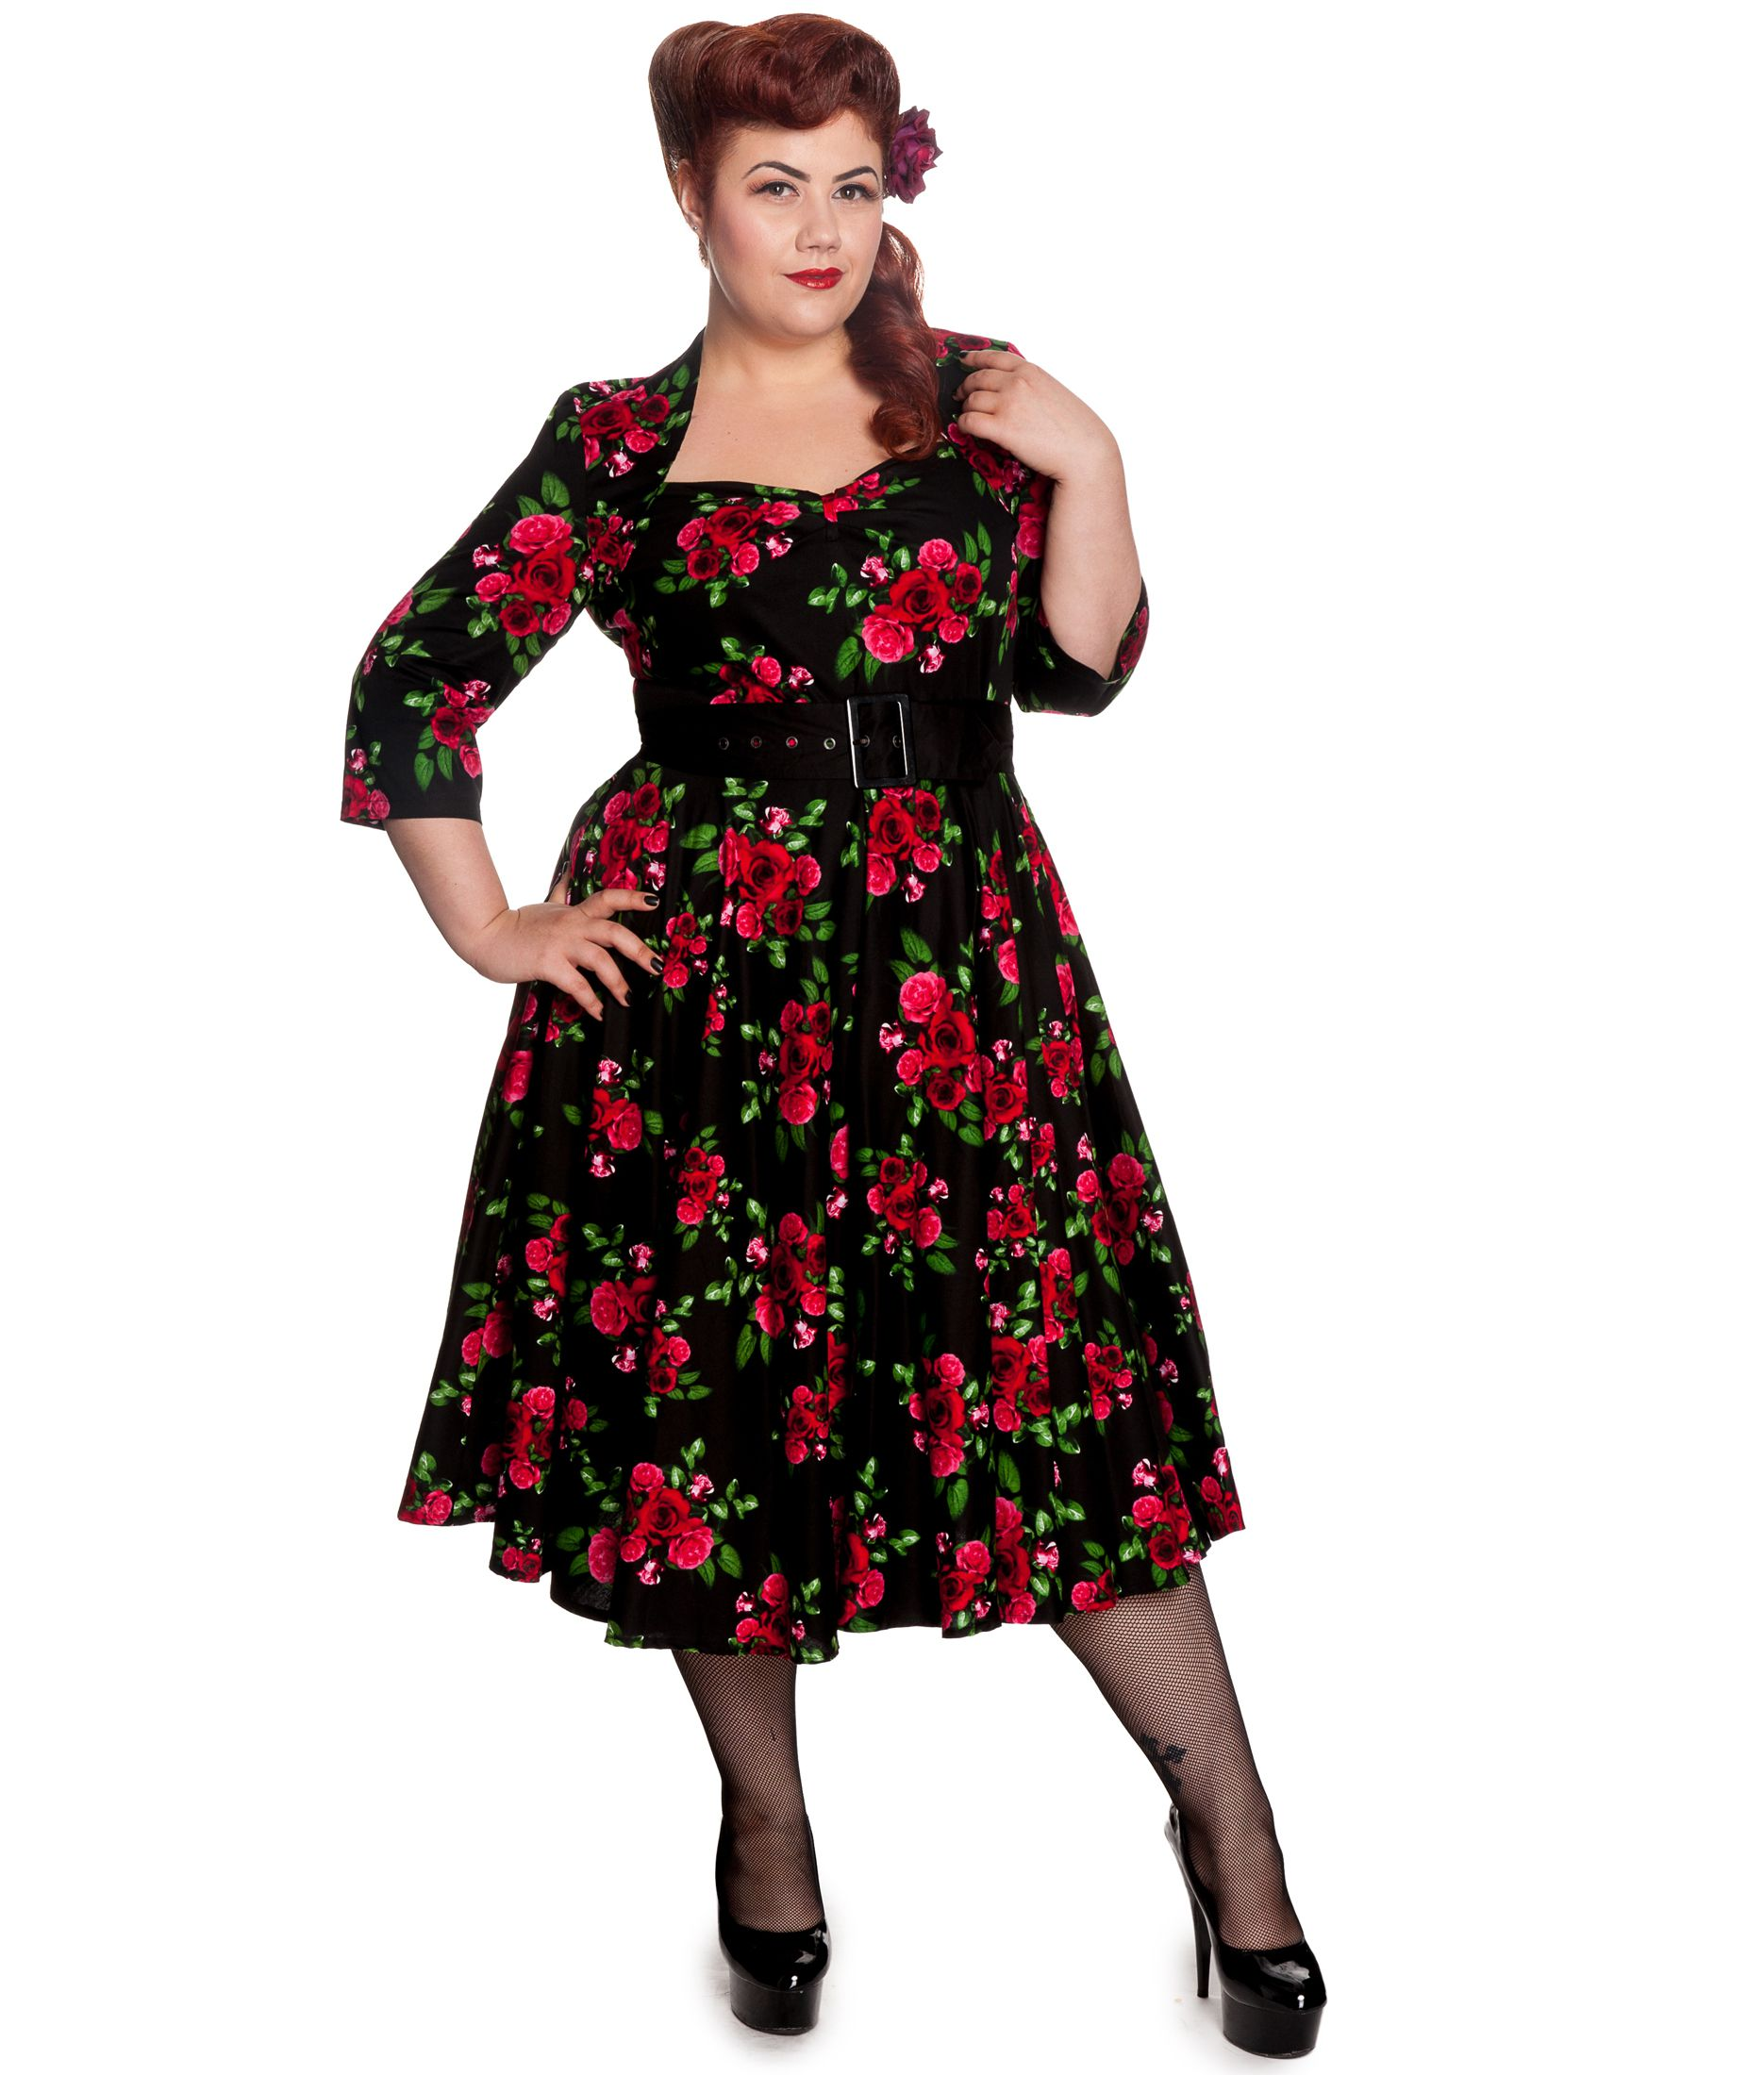 Plus Size Fifties Style Dresses _Other dresses_dressesss